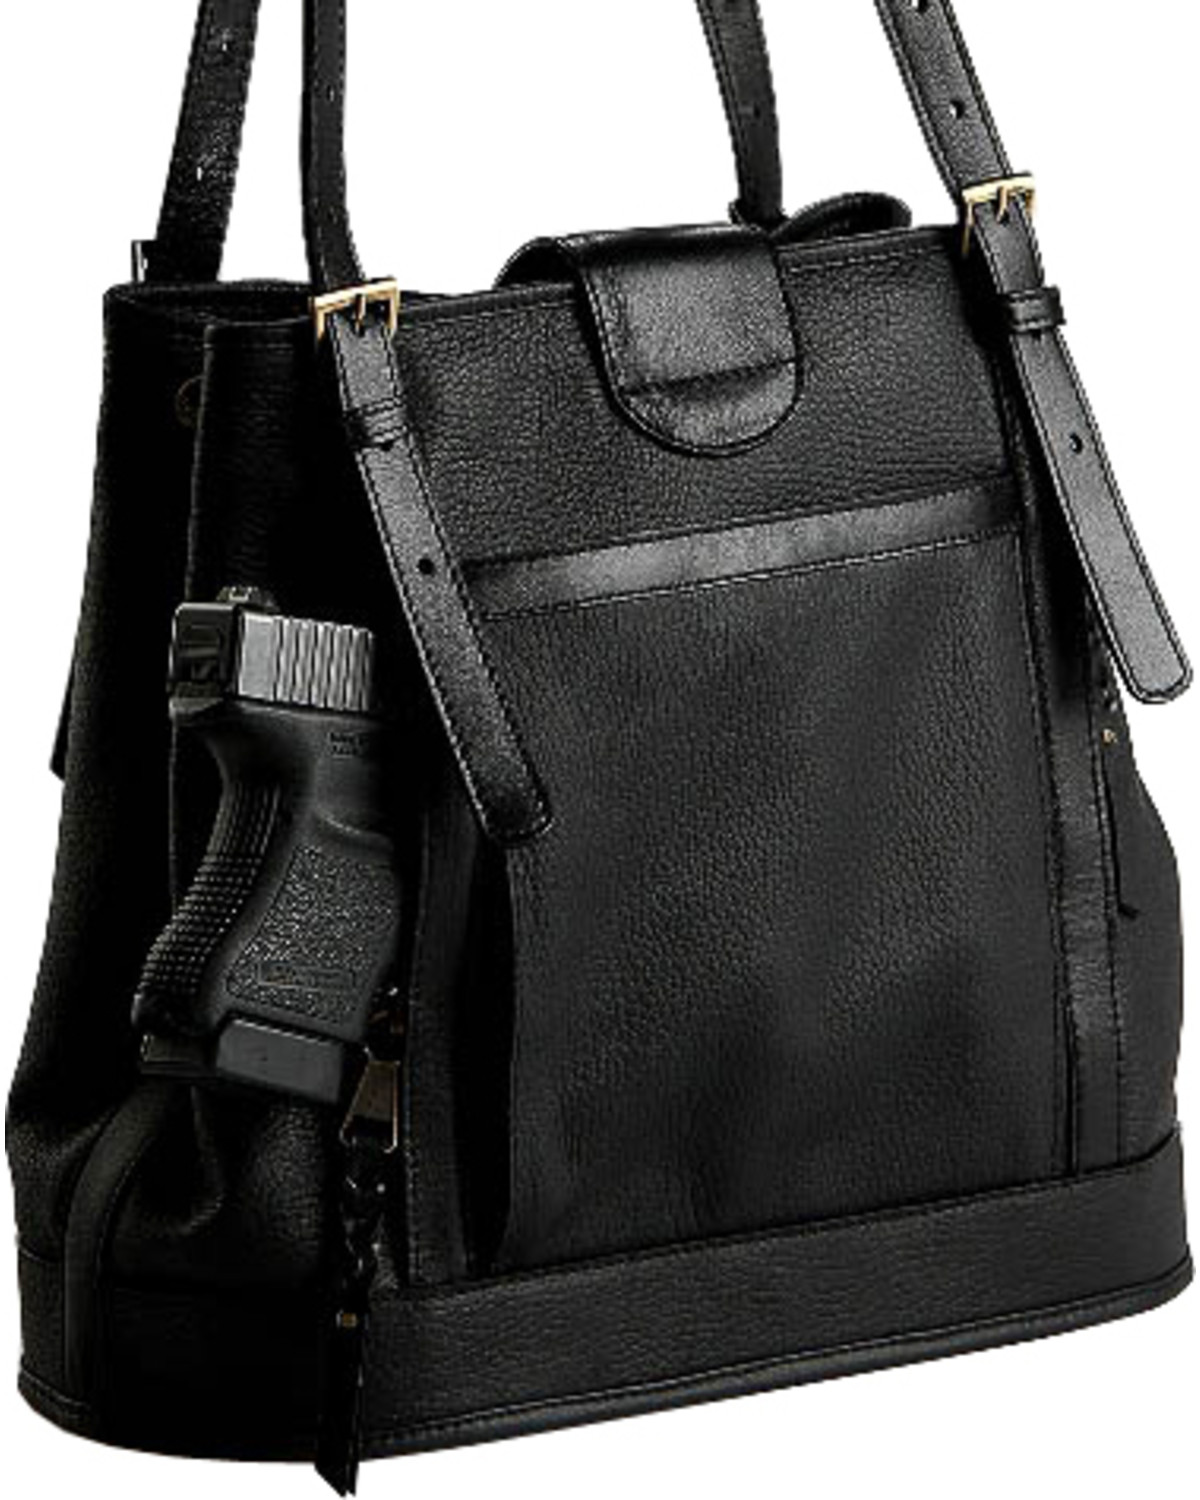 Designer Concealed Carry Black Palisade Tote Bag - Country Outfitter 26b6f17b3ef57